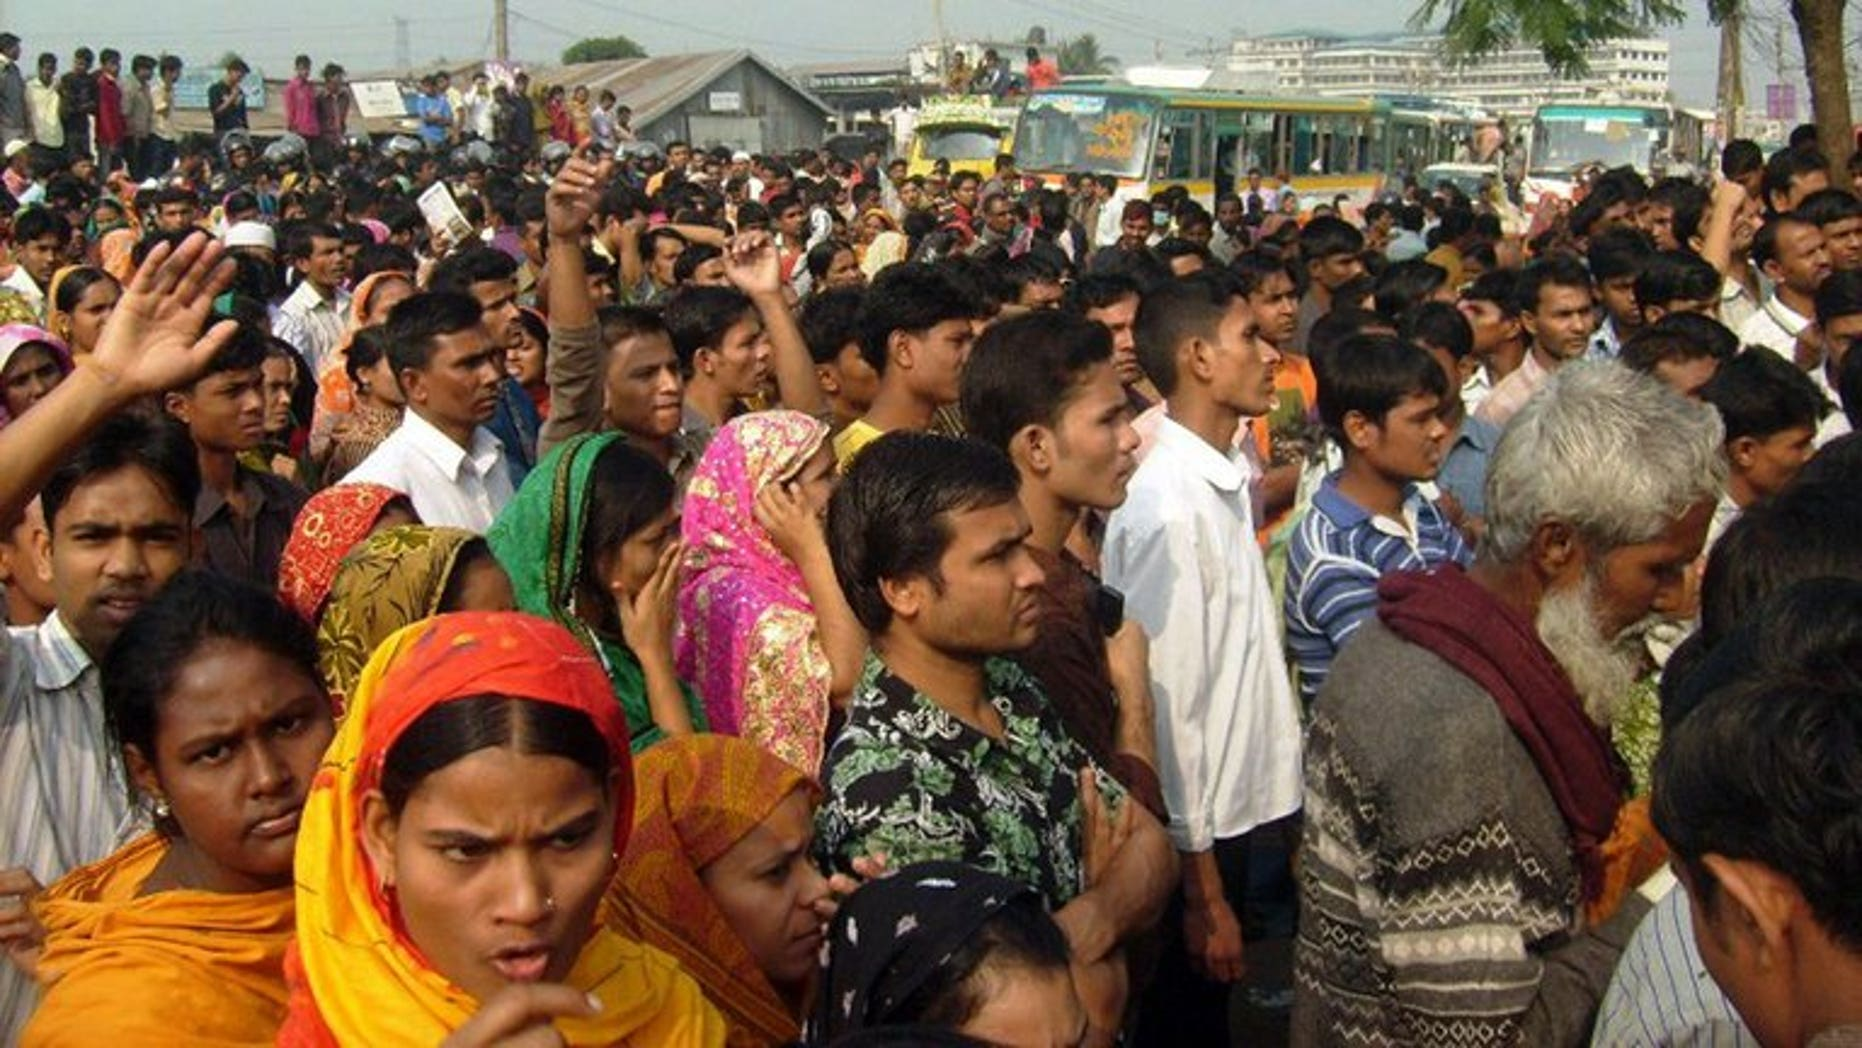 In a file picture taken on December 13, 2010 Bangladeshi garment workers block the road in Gazipur some 35 kms north of Dhaka. Owners of a Bangladesh garment factory were forced to offer prayers and distribute food to the poor on Wednesday in a bid to drive out what workers believed was a ghost at the plant, police said.